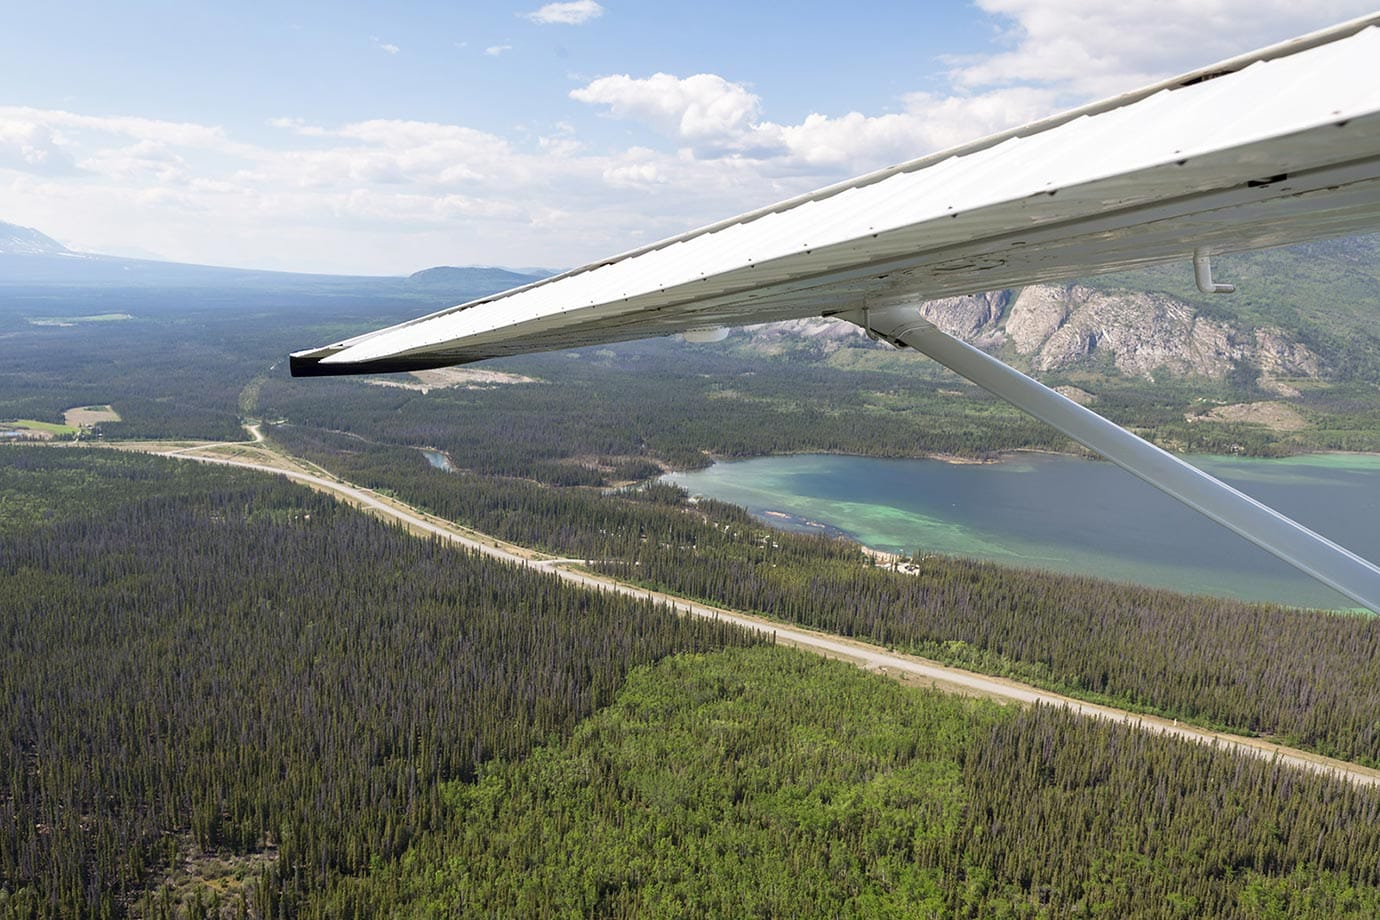 Flying over Haines Junction, Canada